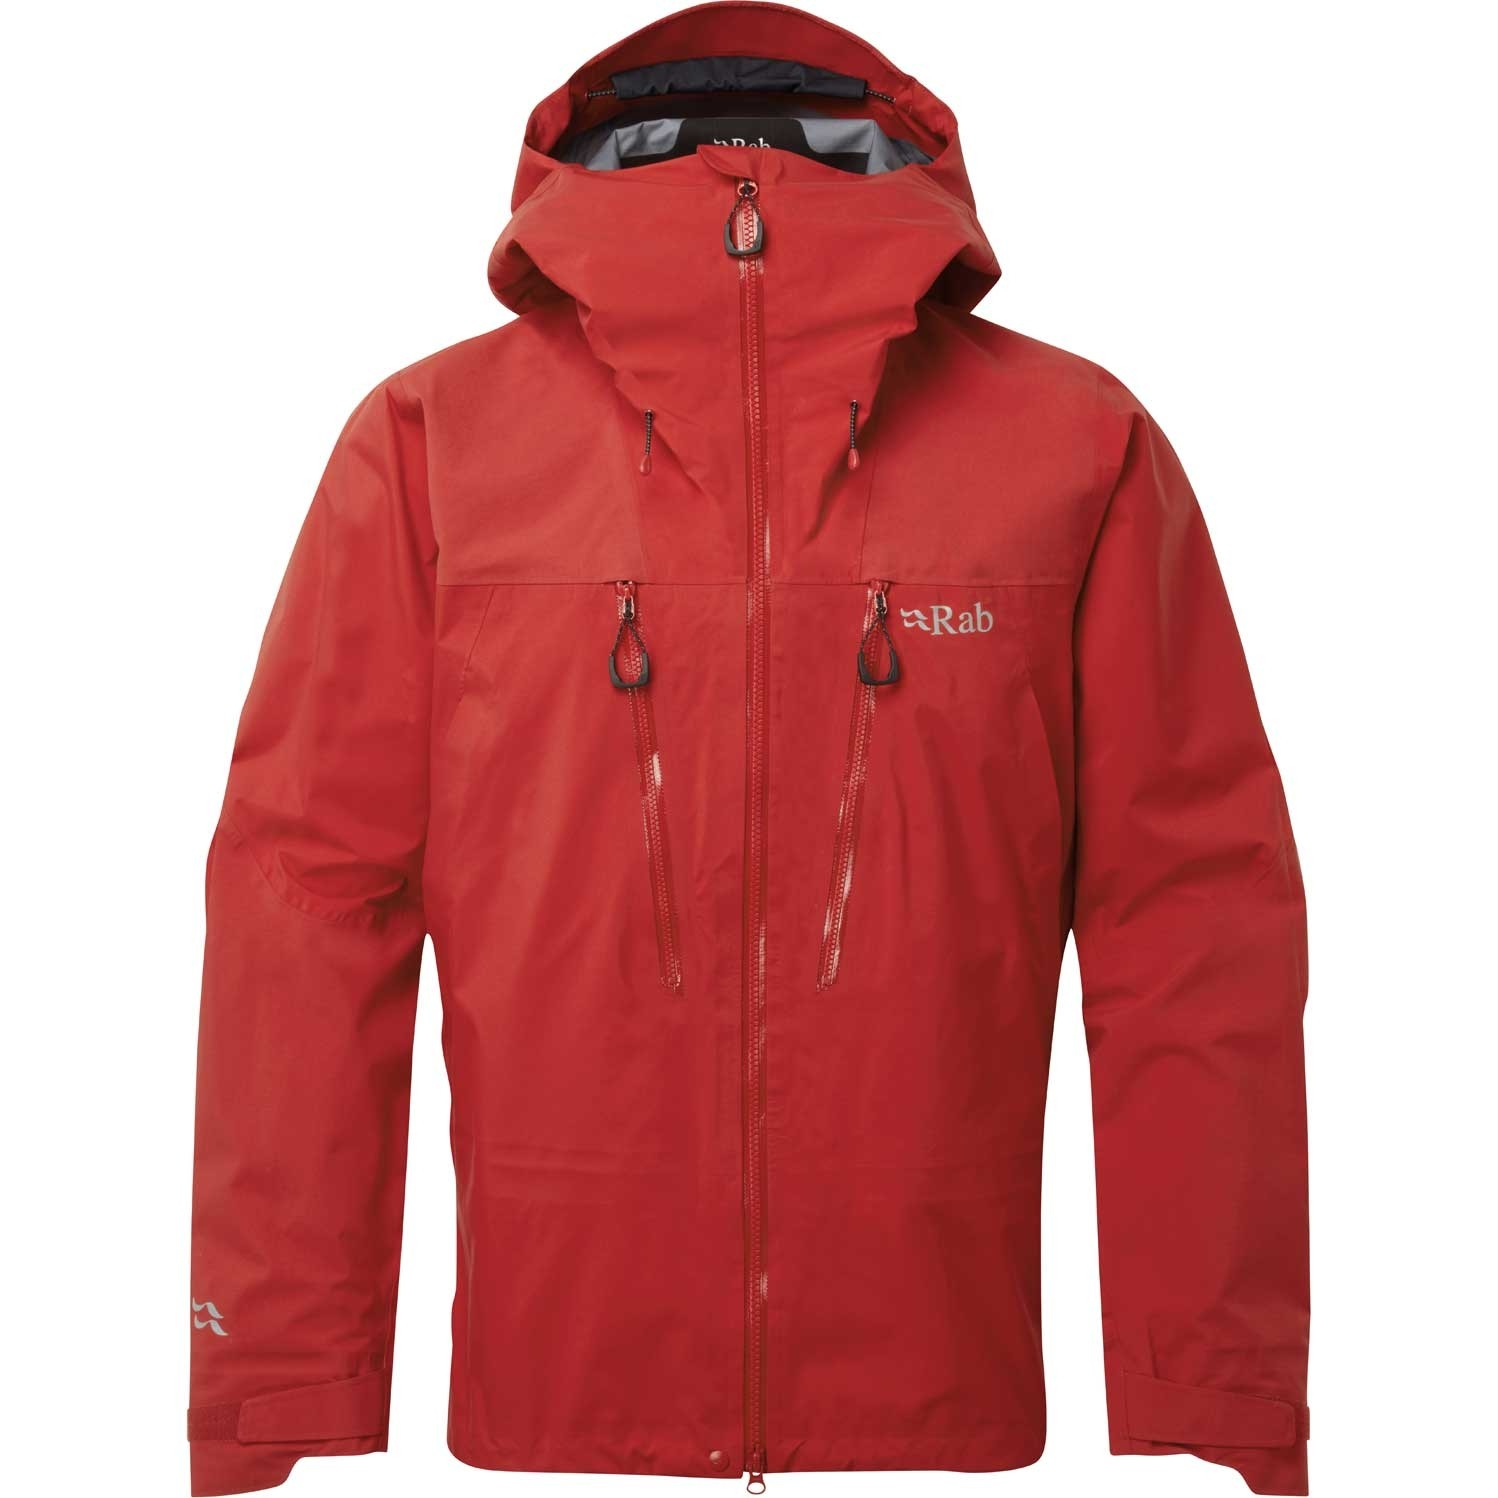 Rab Latok GTX Waterproof Jacket - Men's - Ascent Red